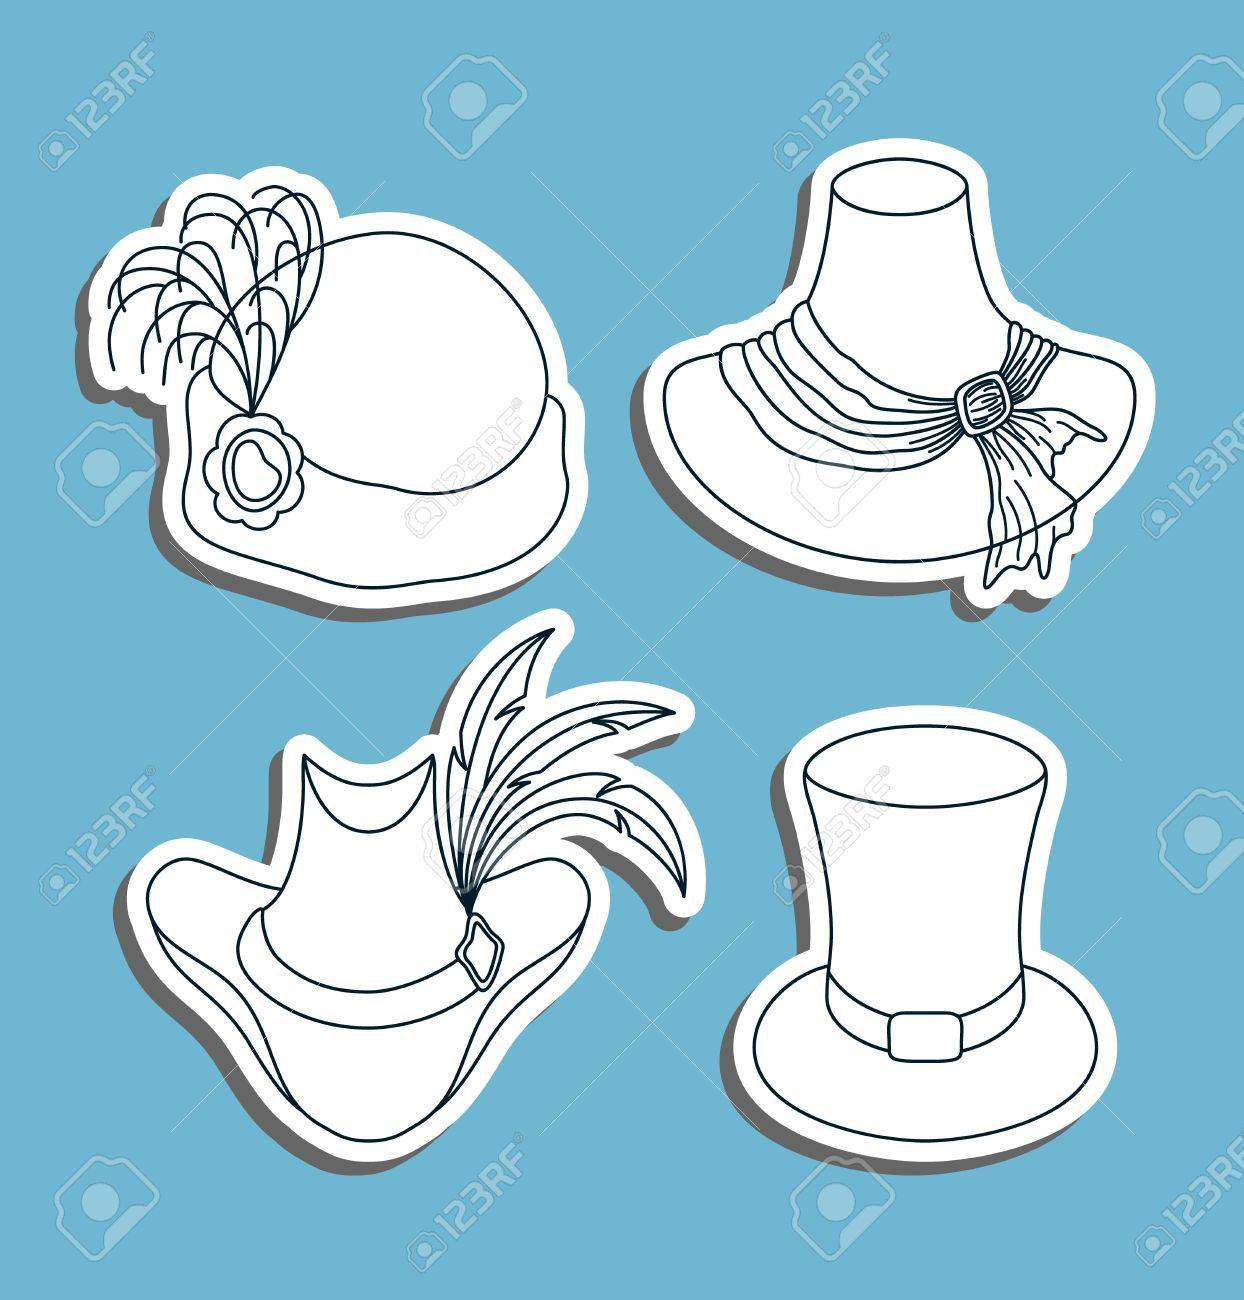 Set of hats in a graphic style  Illustration Stock Vector - 15482726